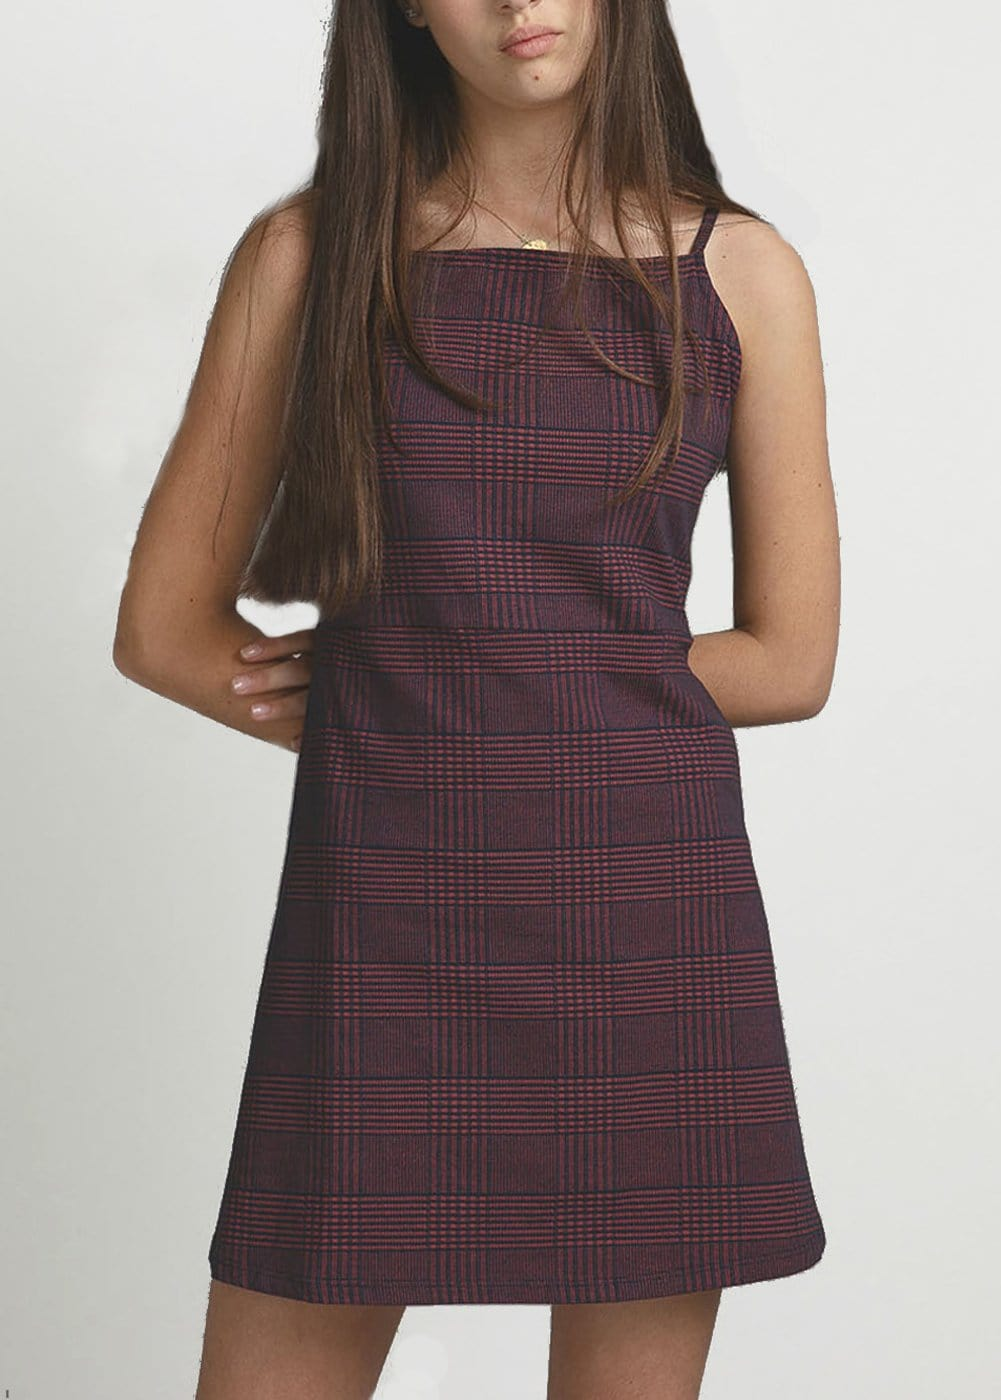 Youth Girls Burgundy Clueless Dress Model Front